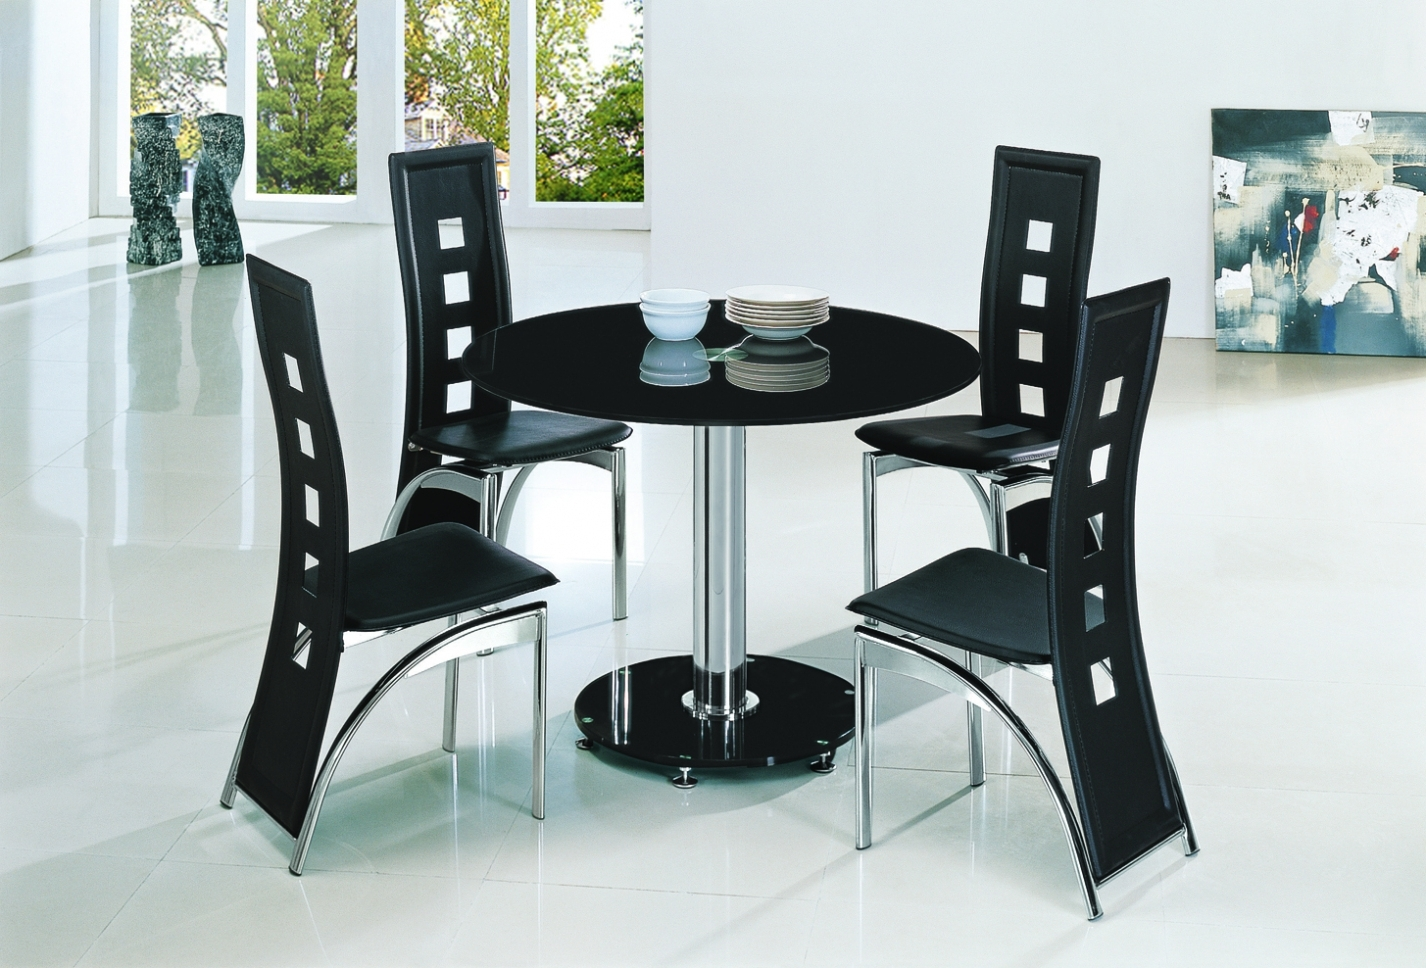 Most Recent Round Black Glass Dining Tables And 4 Chairs For Dining: Planet Black Round Glass Dining Table With Alison Chairs (View 9 of 25)